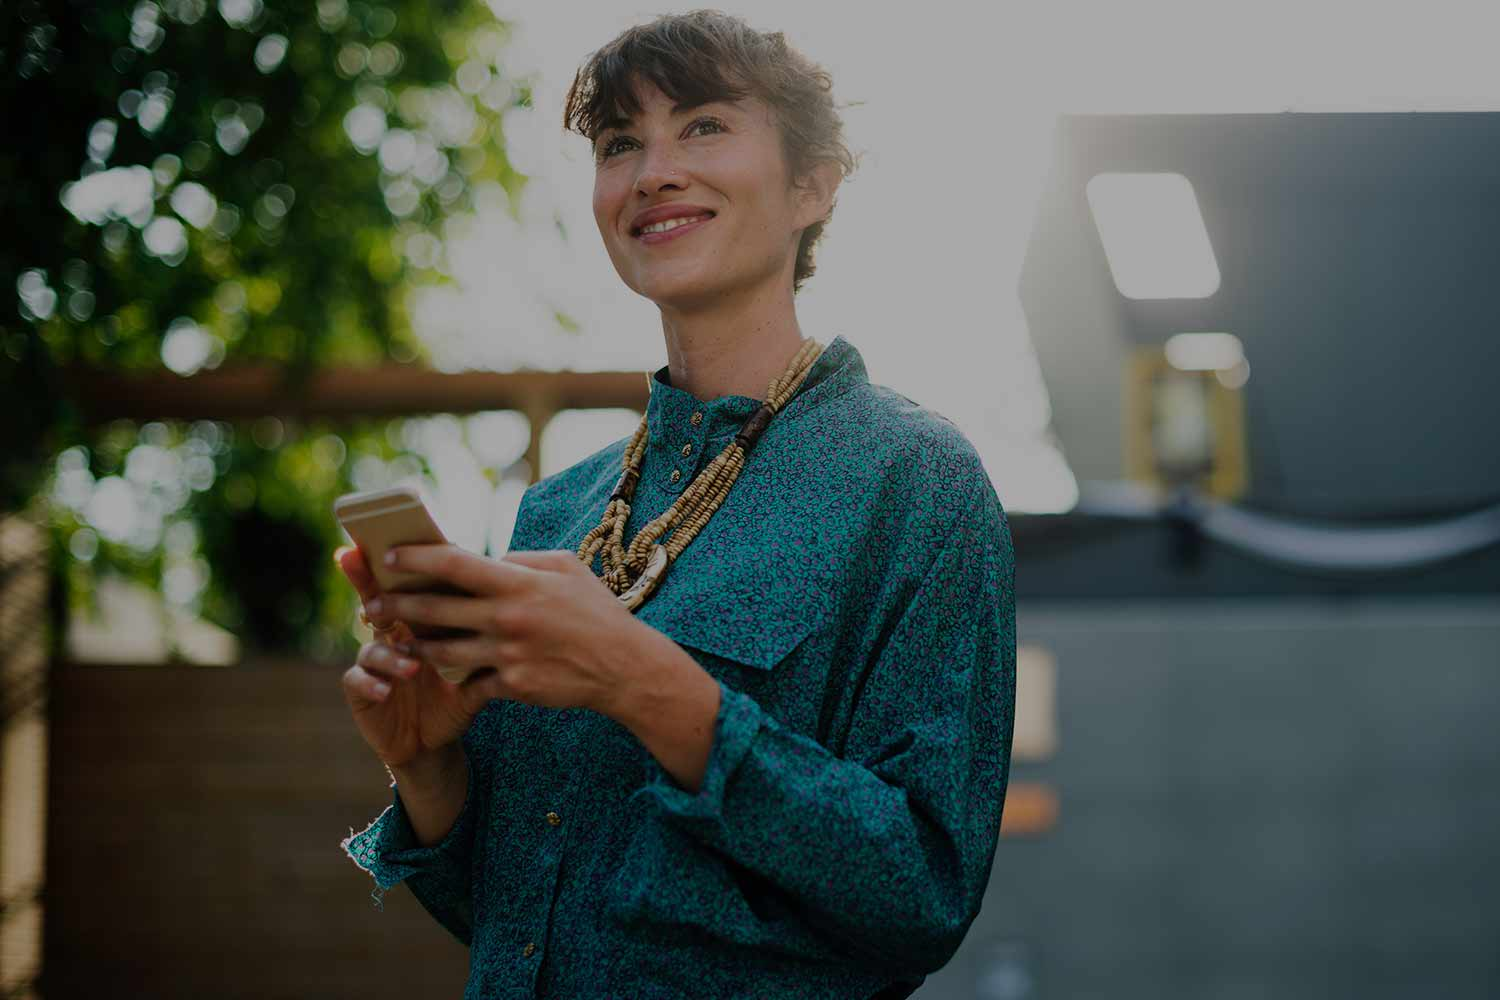 woman-smiling-with-phone-in-hand